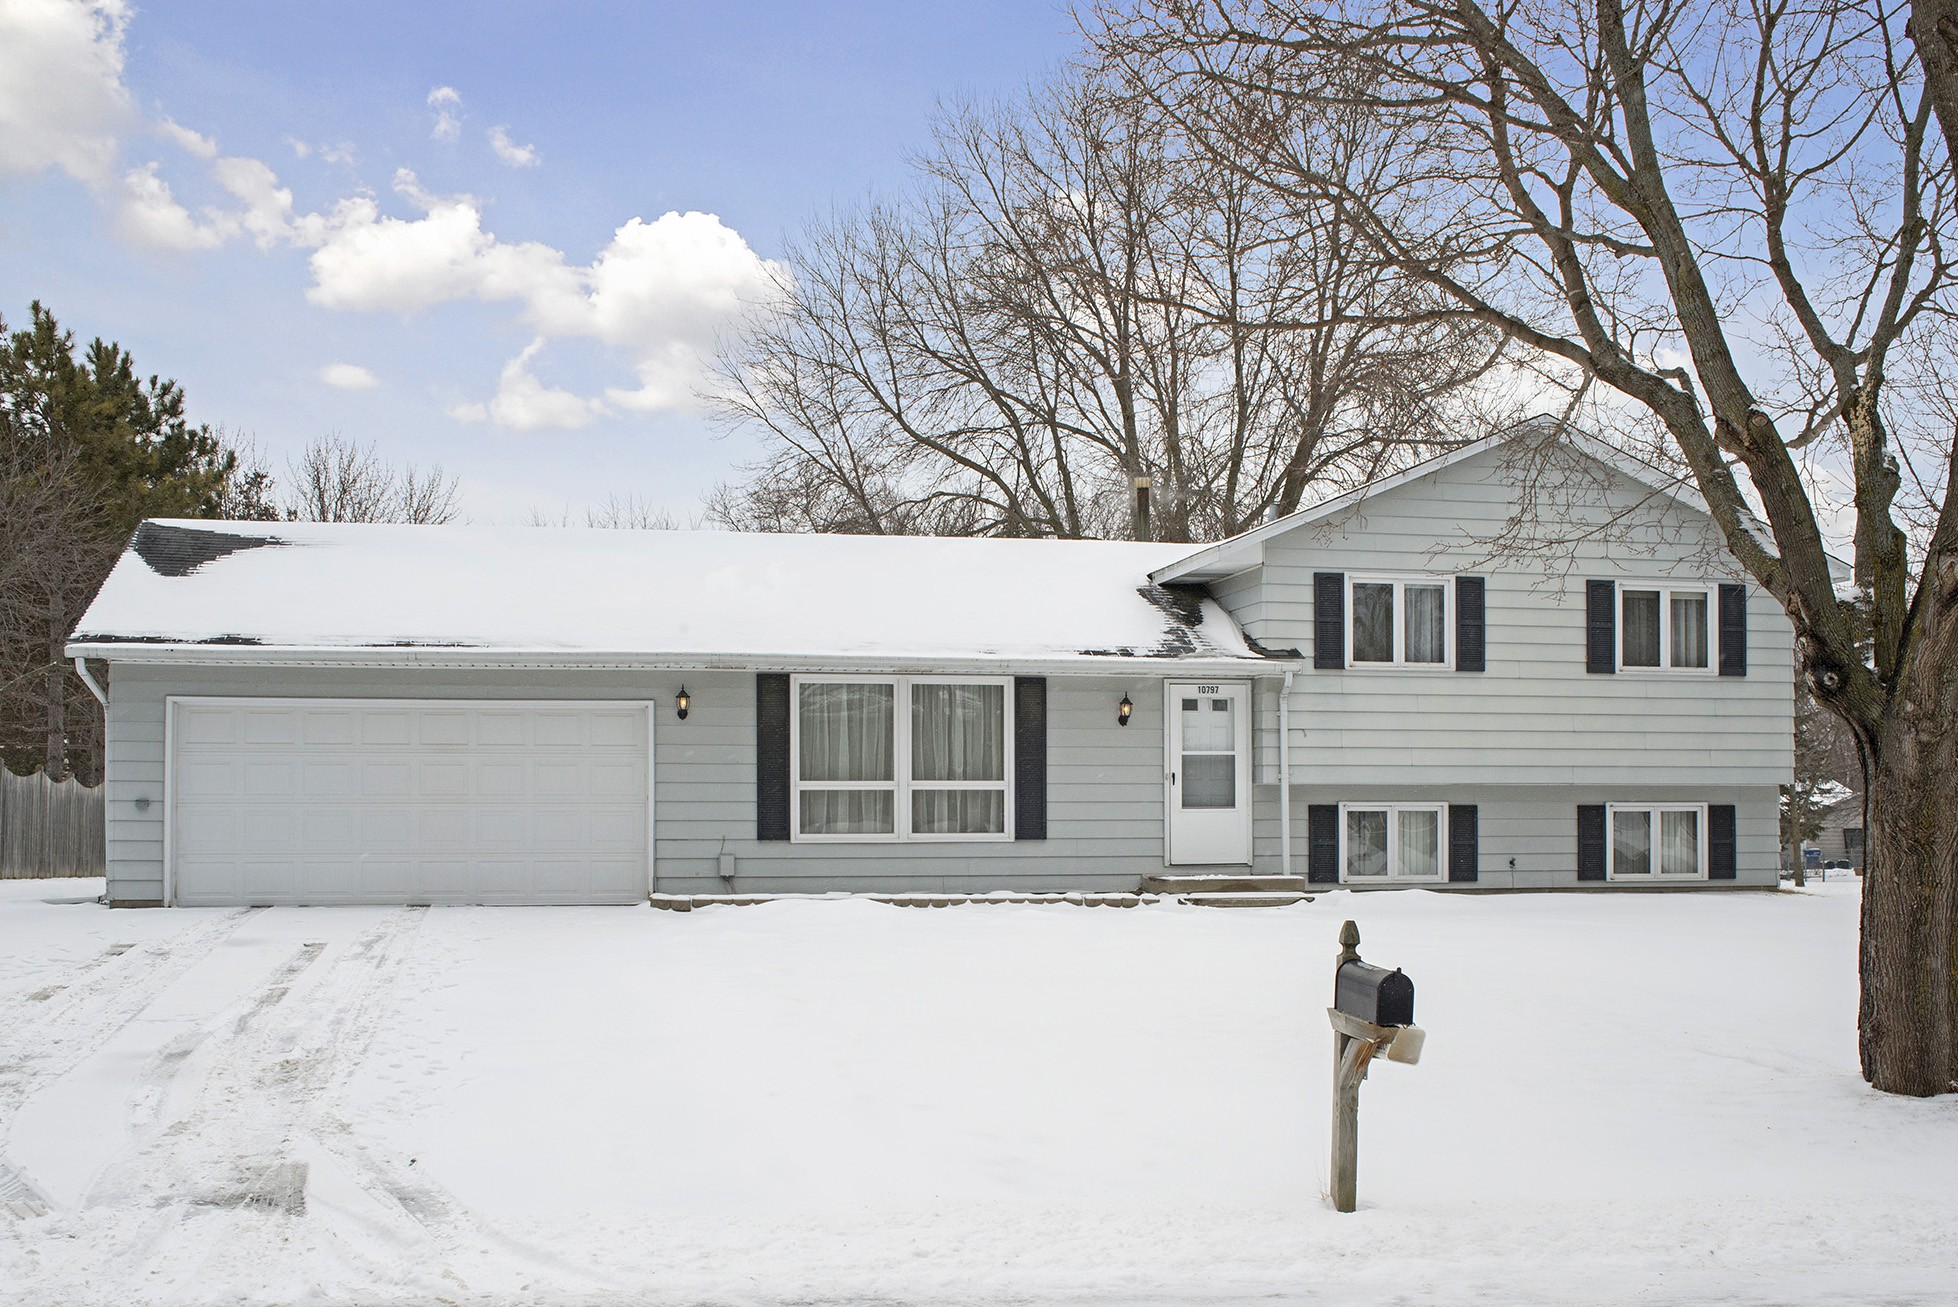 Front View - 10797 108th Place N. Maple Grove, MN 55369